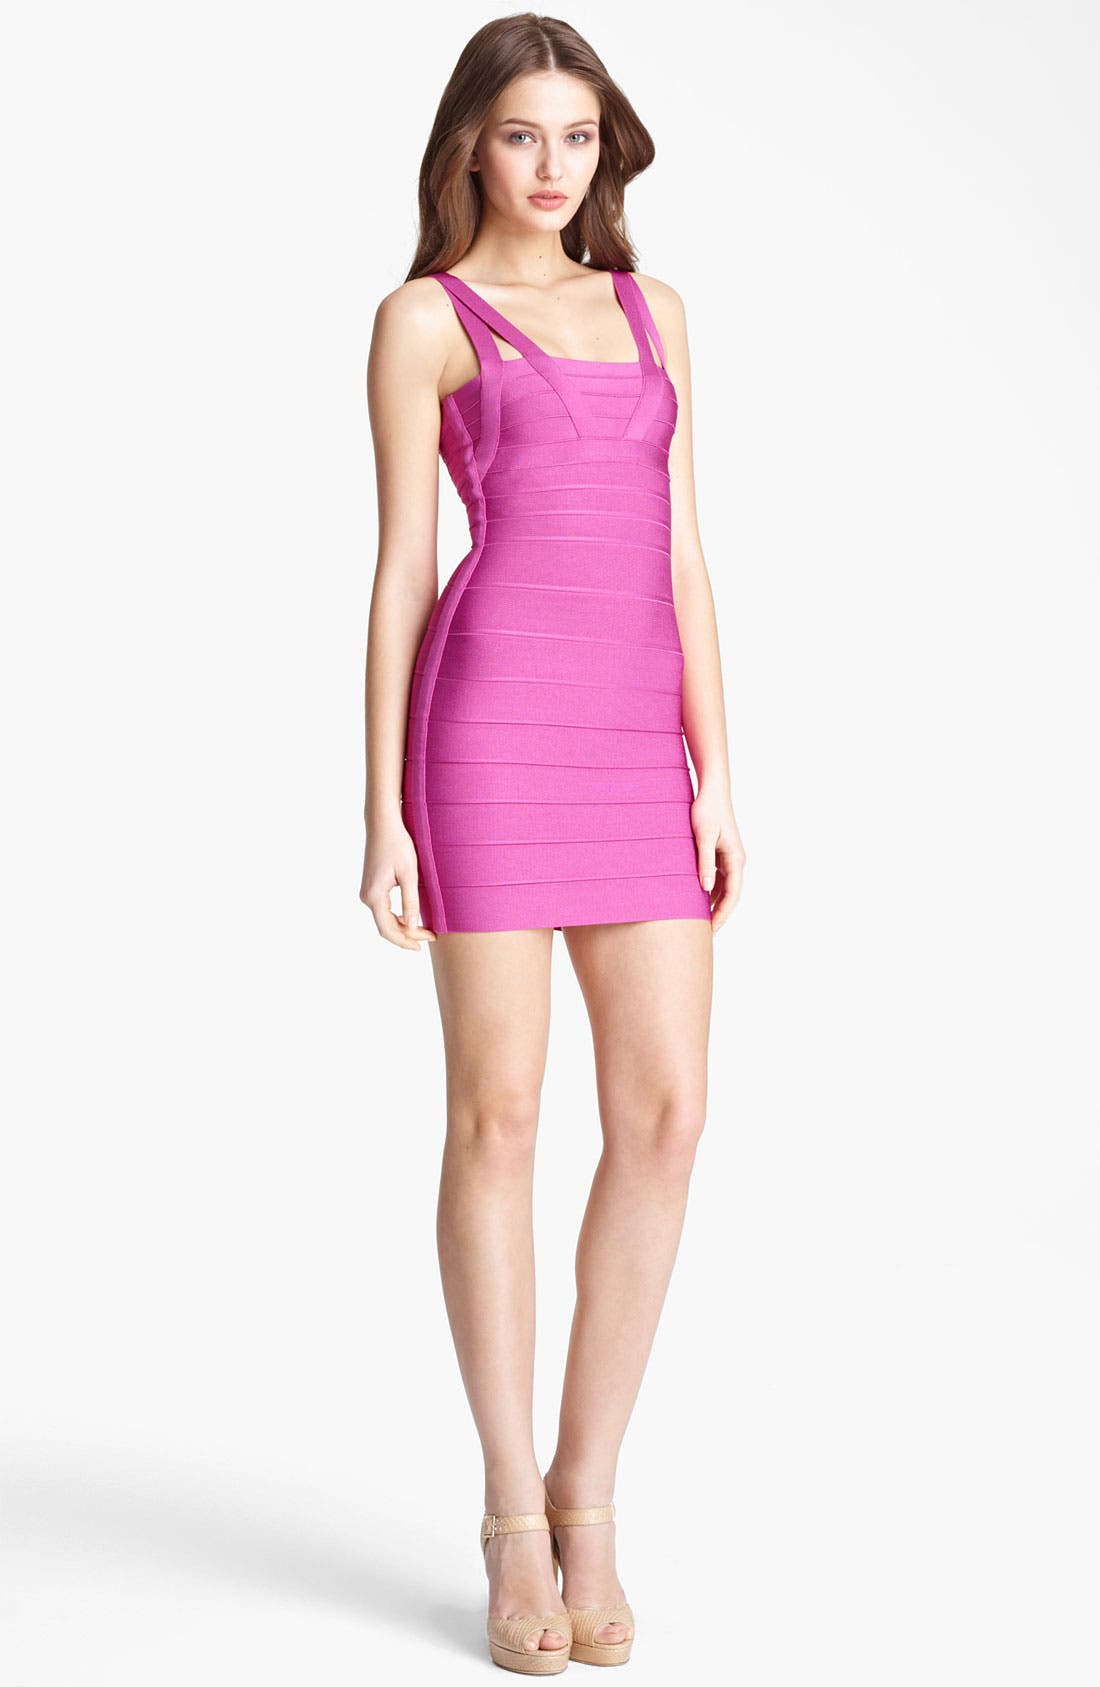 Alternate Image 1 Selected - CRISS CROSS DRESS WITH STRAPS